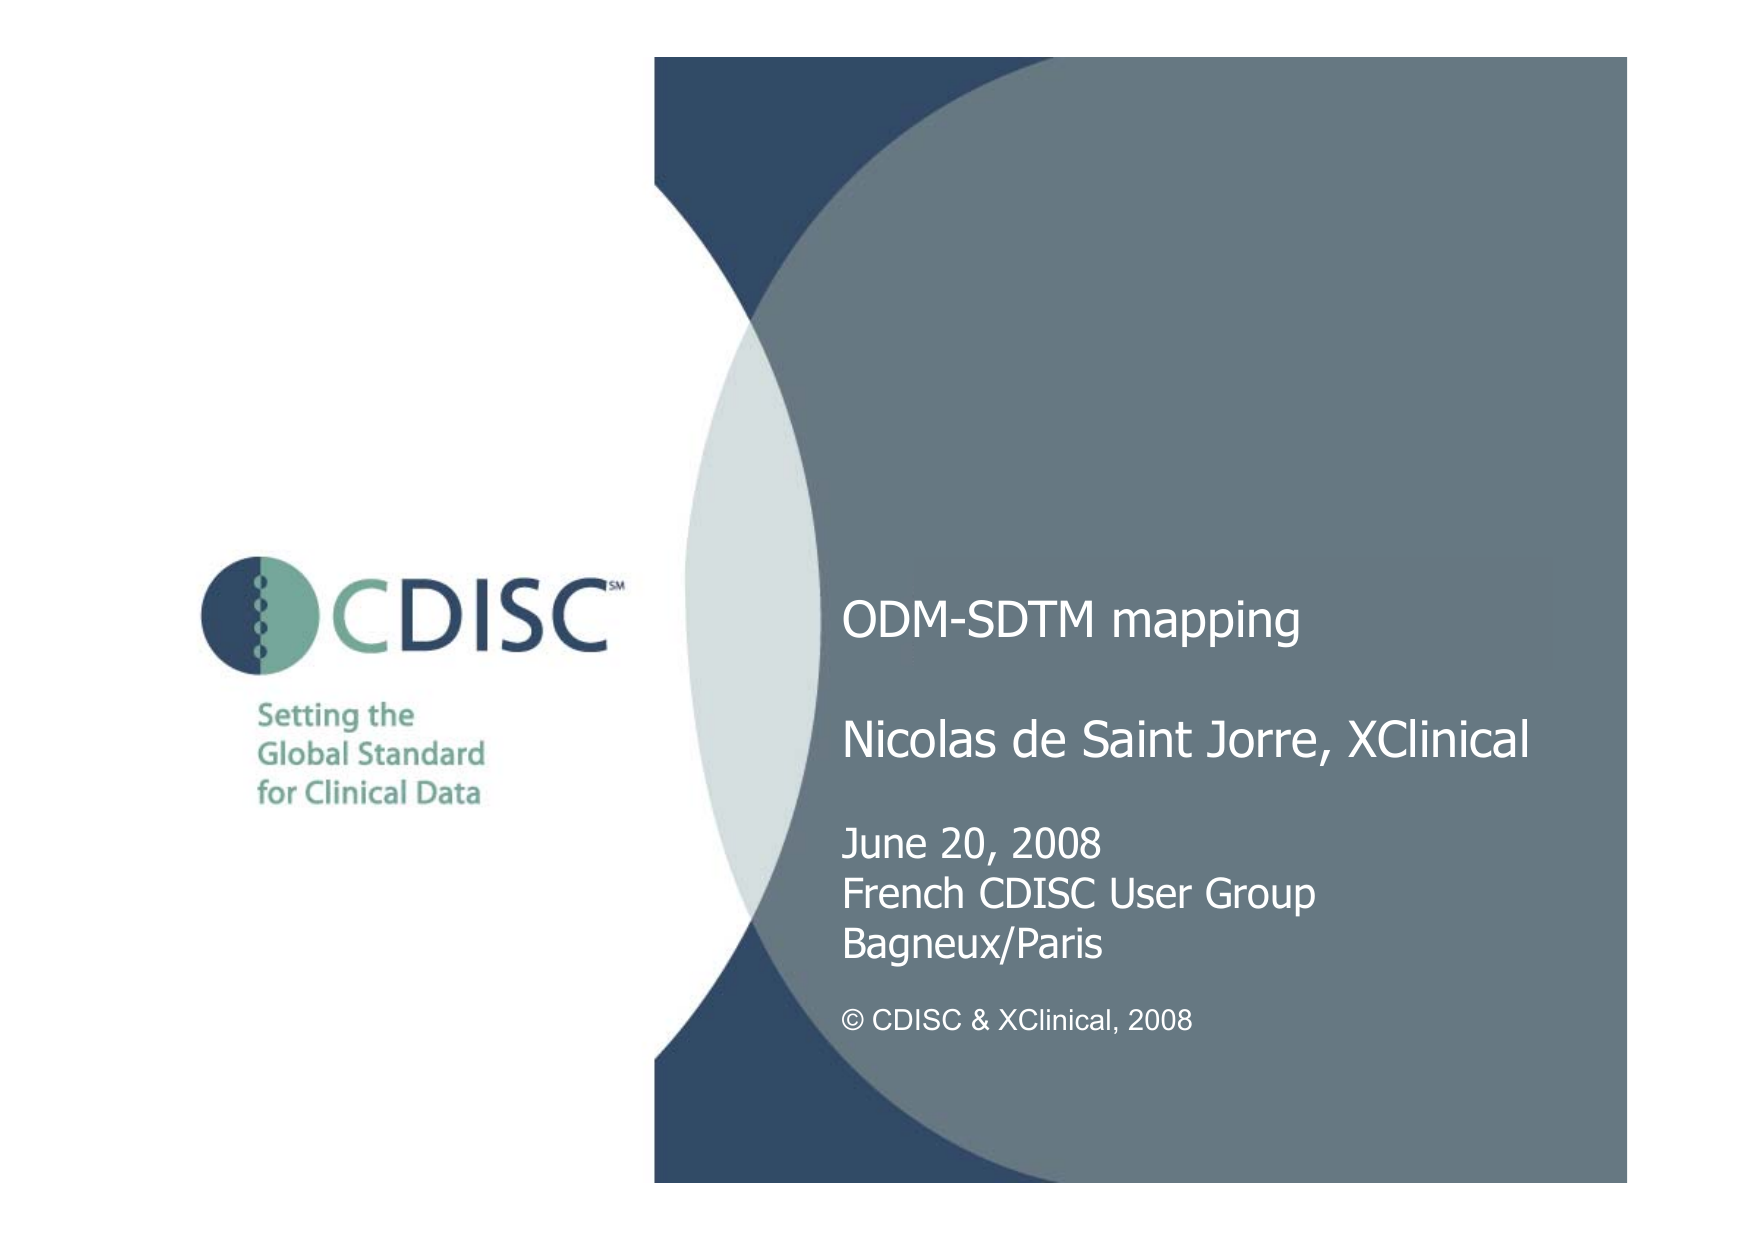 CDISC GUF - 2008-06-20 - ODM-SDTM-Mapping on